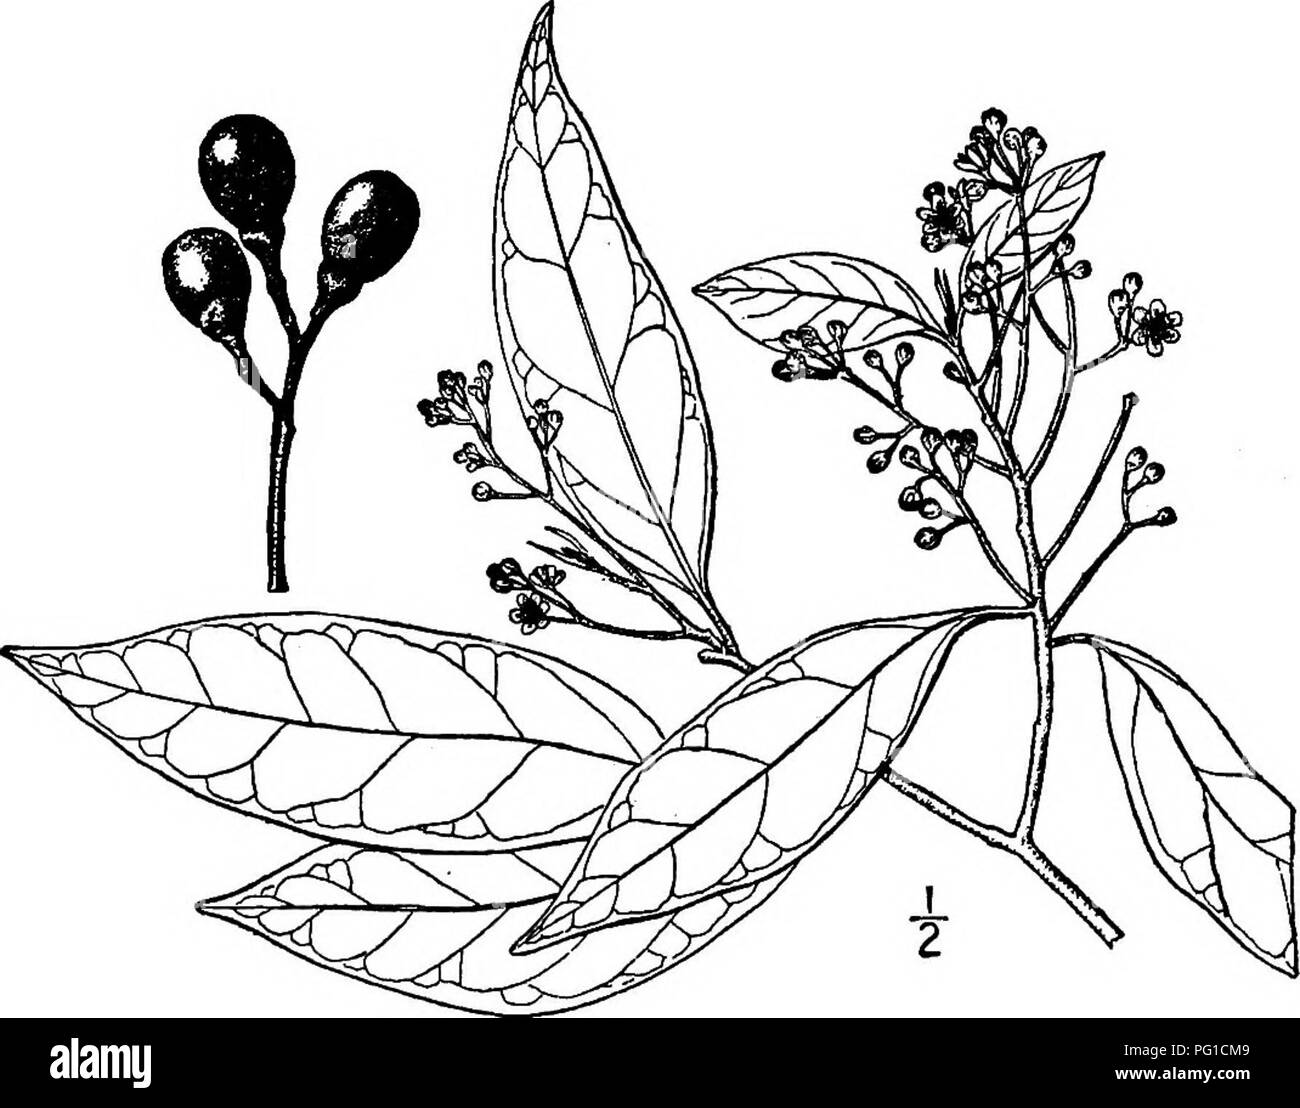 . North American trees : being descriptions and illustrations of the trees growing independently of cultivation in North America, north of Mexico and the West Indies . Trees. Lancewood 401 thin, light gray, the slender smooth round twigs brown, turning gray. The oblong to oblong-lanceolate leaves are 15 cm. long or less, pointed or long-pointed, smooth, dark green and shining on the upper surface, dull green, sparingly finely hairy or smooth on the under side, narrowed at the base, rather strongly netted-veined, their stalks 1.5 cm. long or less. The small perfect white flowers are numerous in - Stock Image